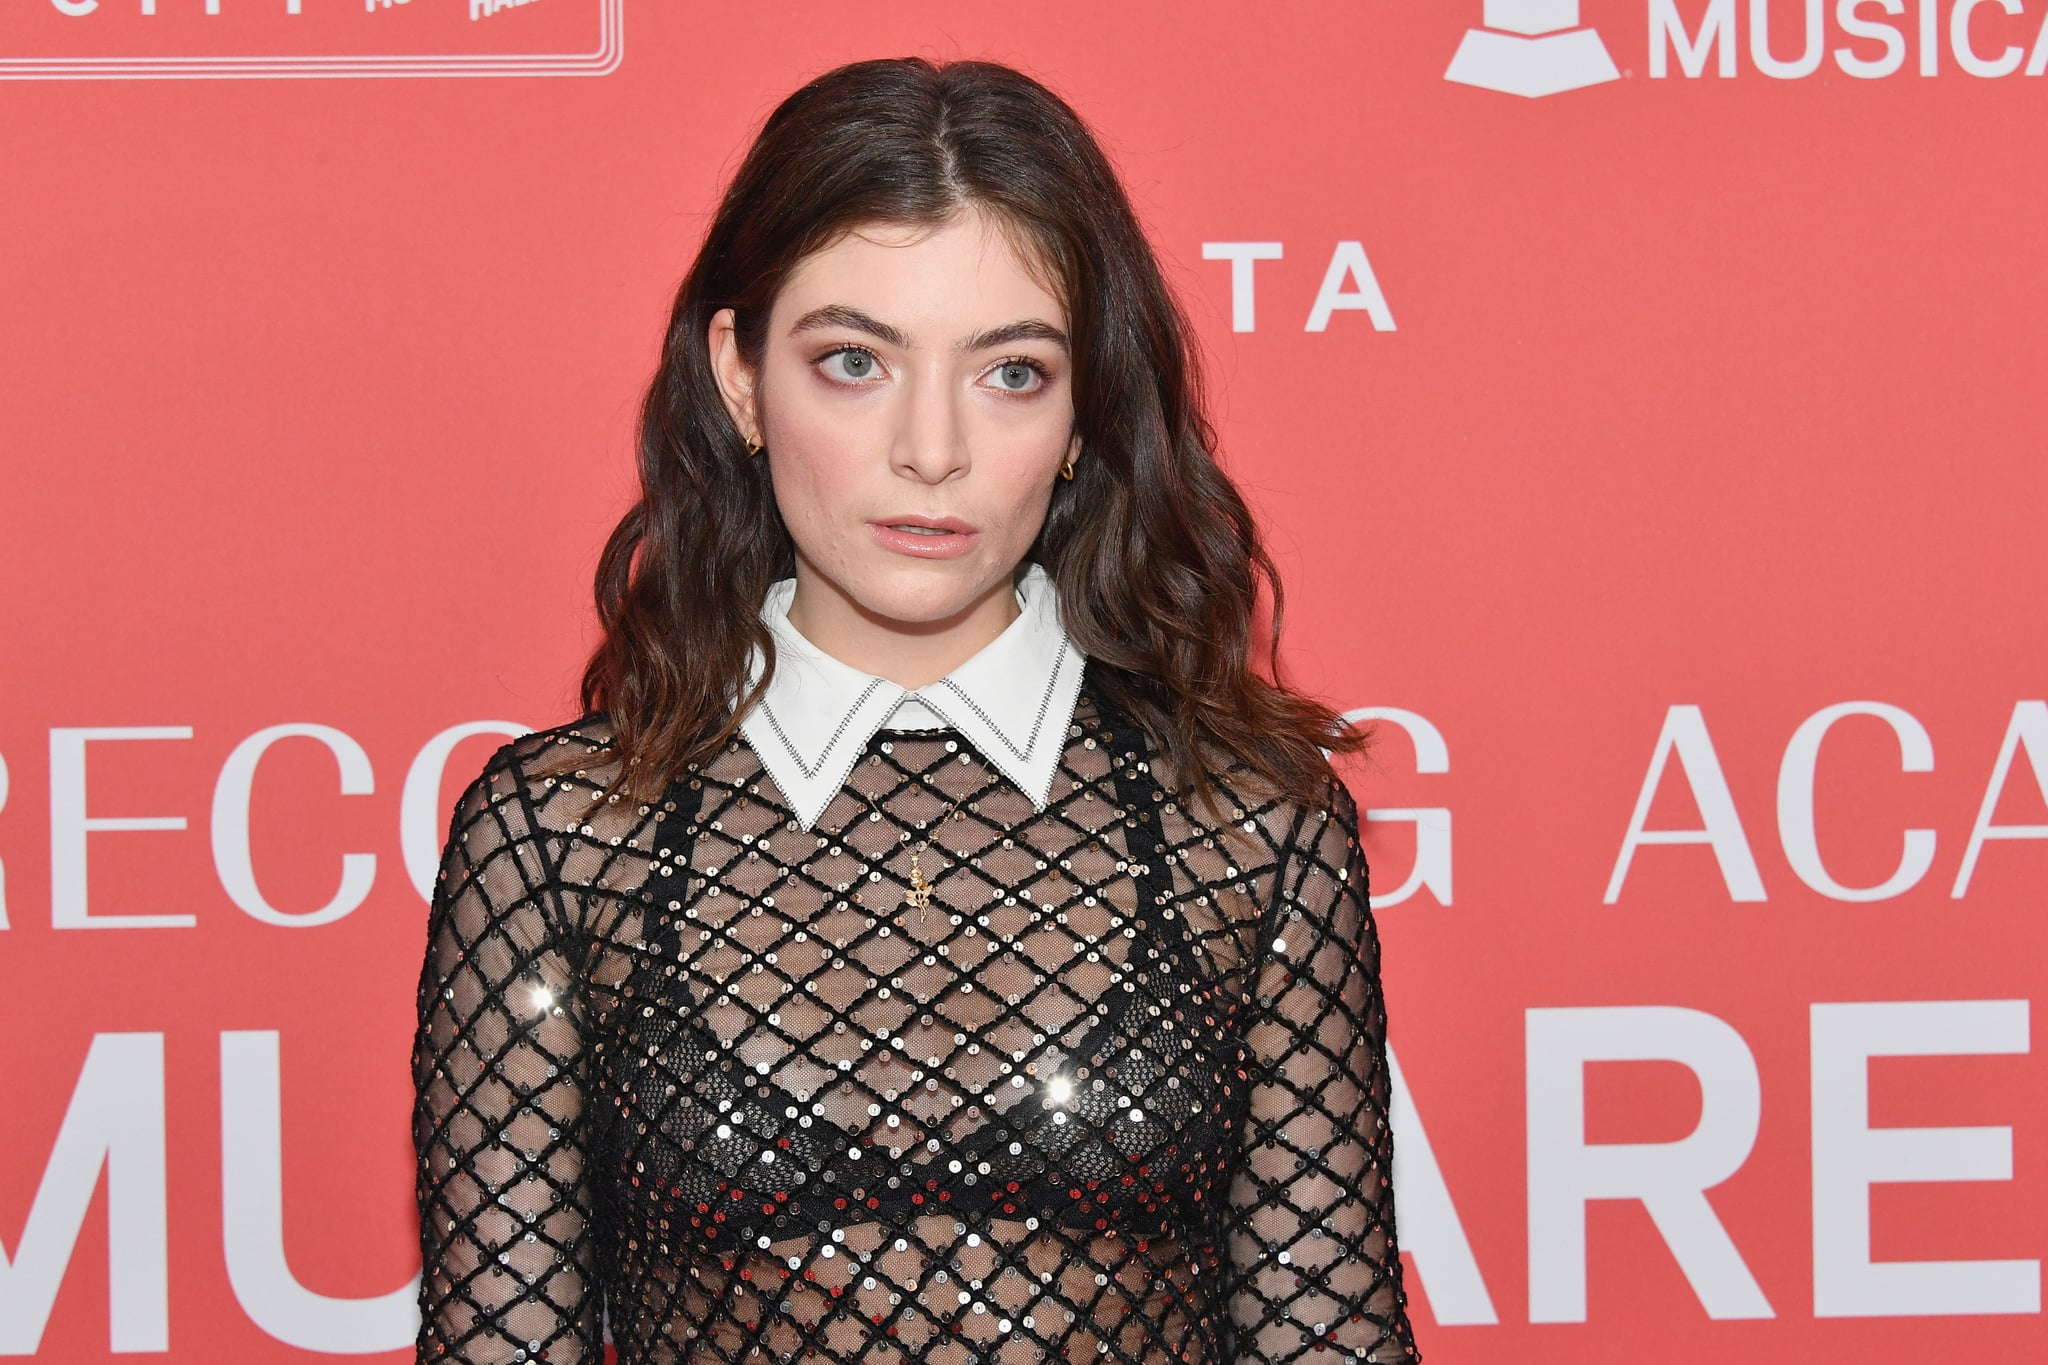 NEW YORK, NY - JANUARY 26:  Recording artist Lorde attends MusiCares Person of the Year honoring Fleetwood Mac at Radio City Music Hall on January 26, 2018 in New York City.  (Photo by Dia Dipasupil/Getty Images )